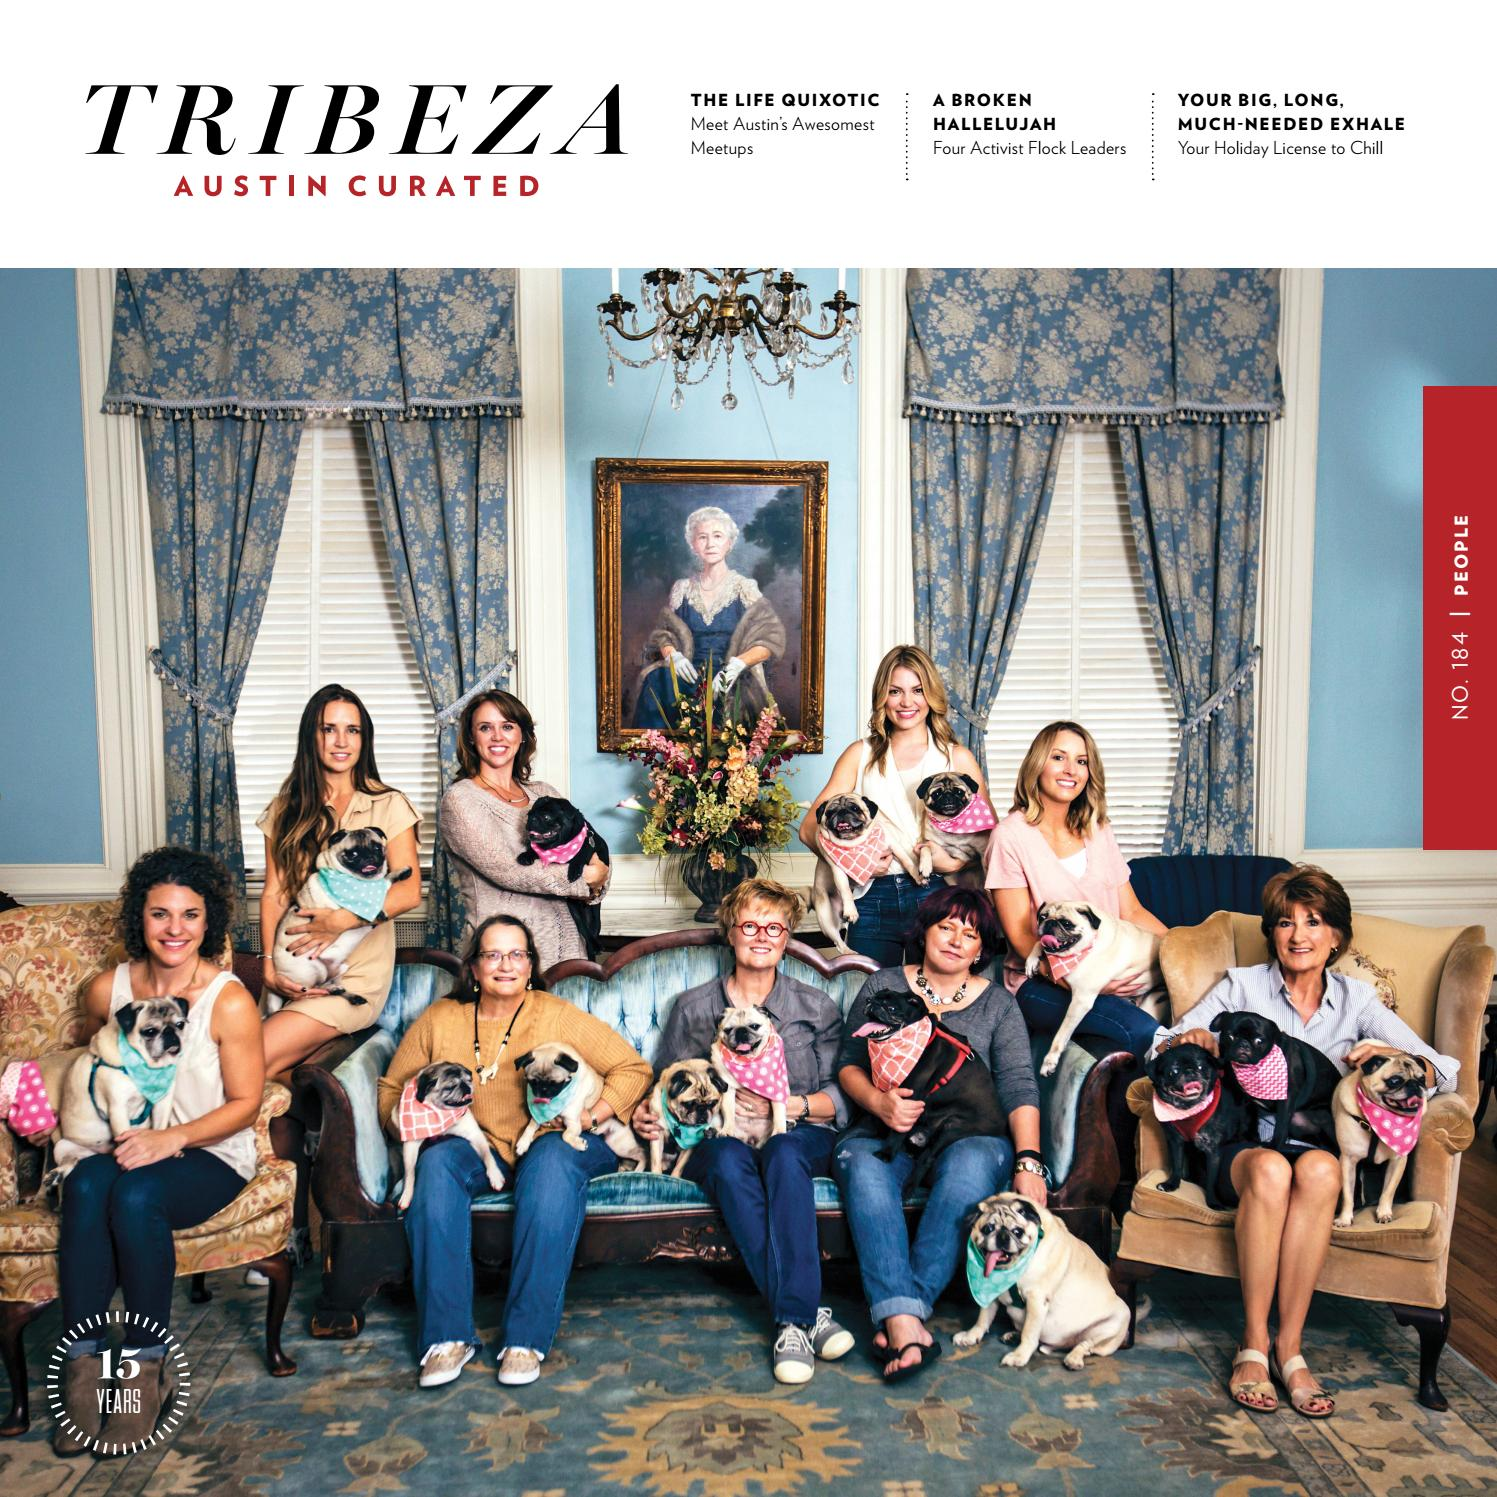 December 2016 People Issue By Tribeza Austin Curated Issuu Audio Usb Circuit Board For Studio 1569 Notebook Pricefallscom